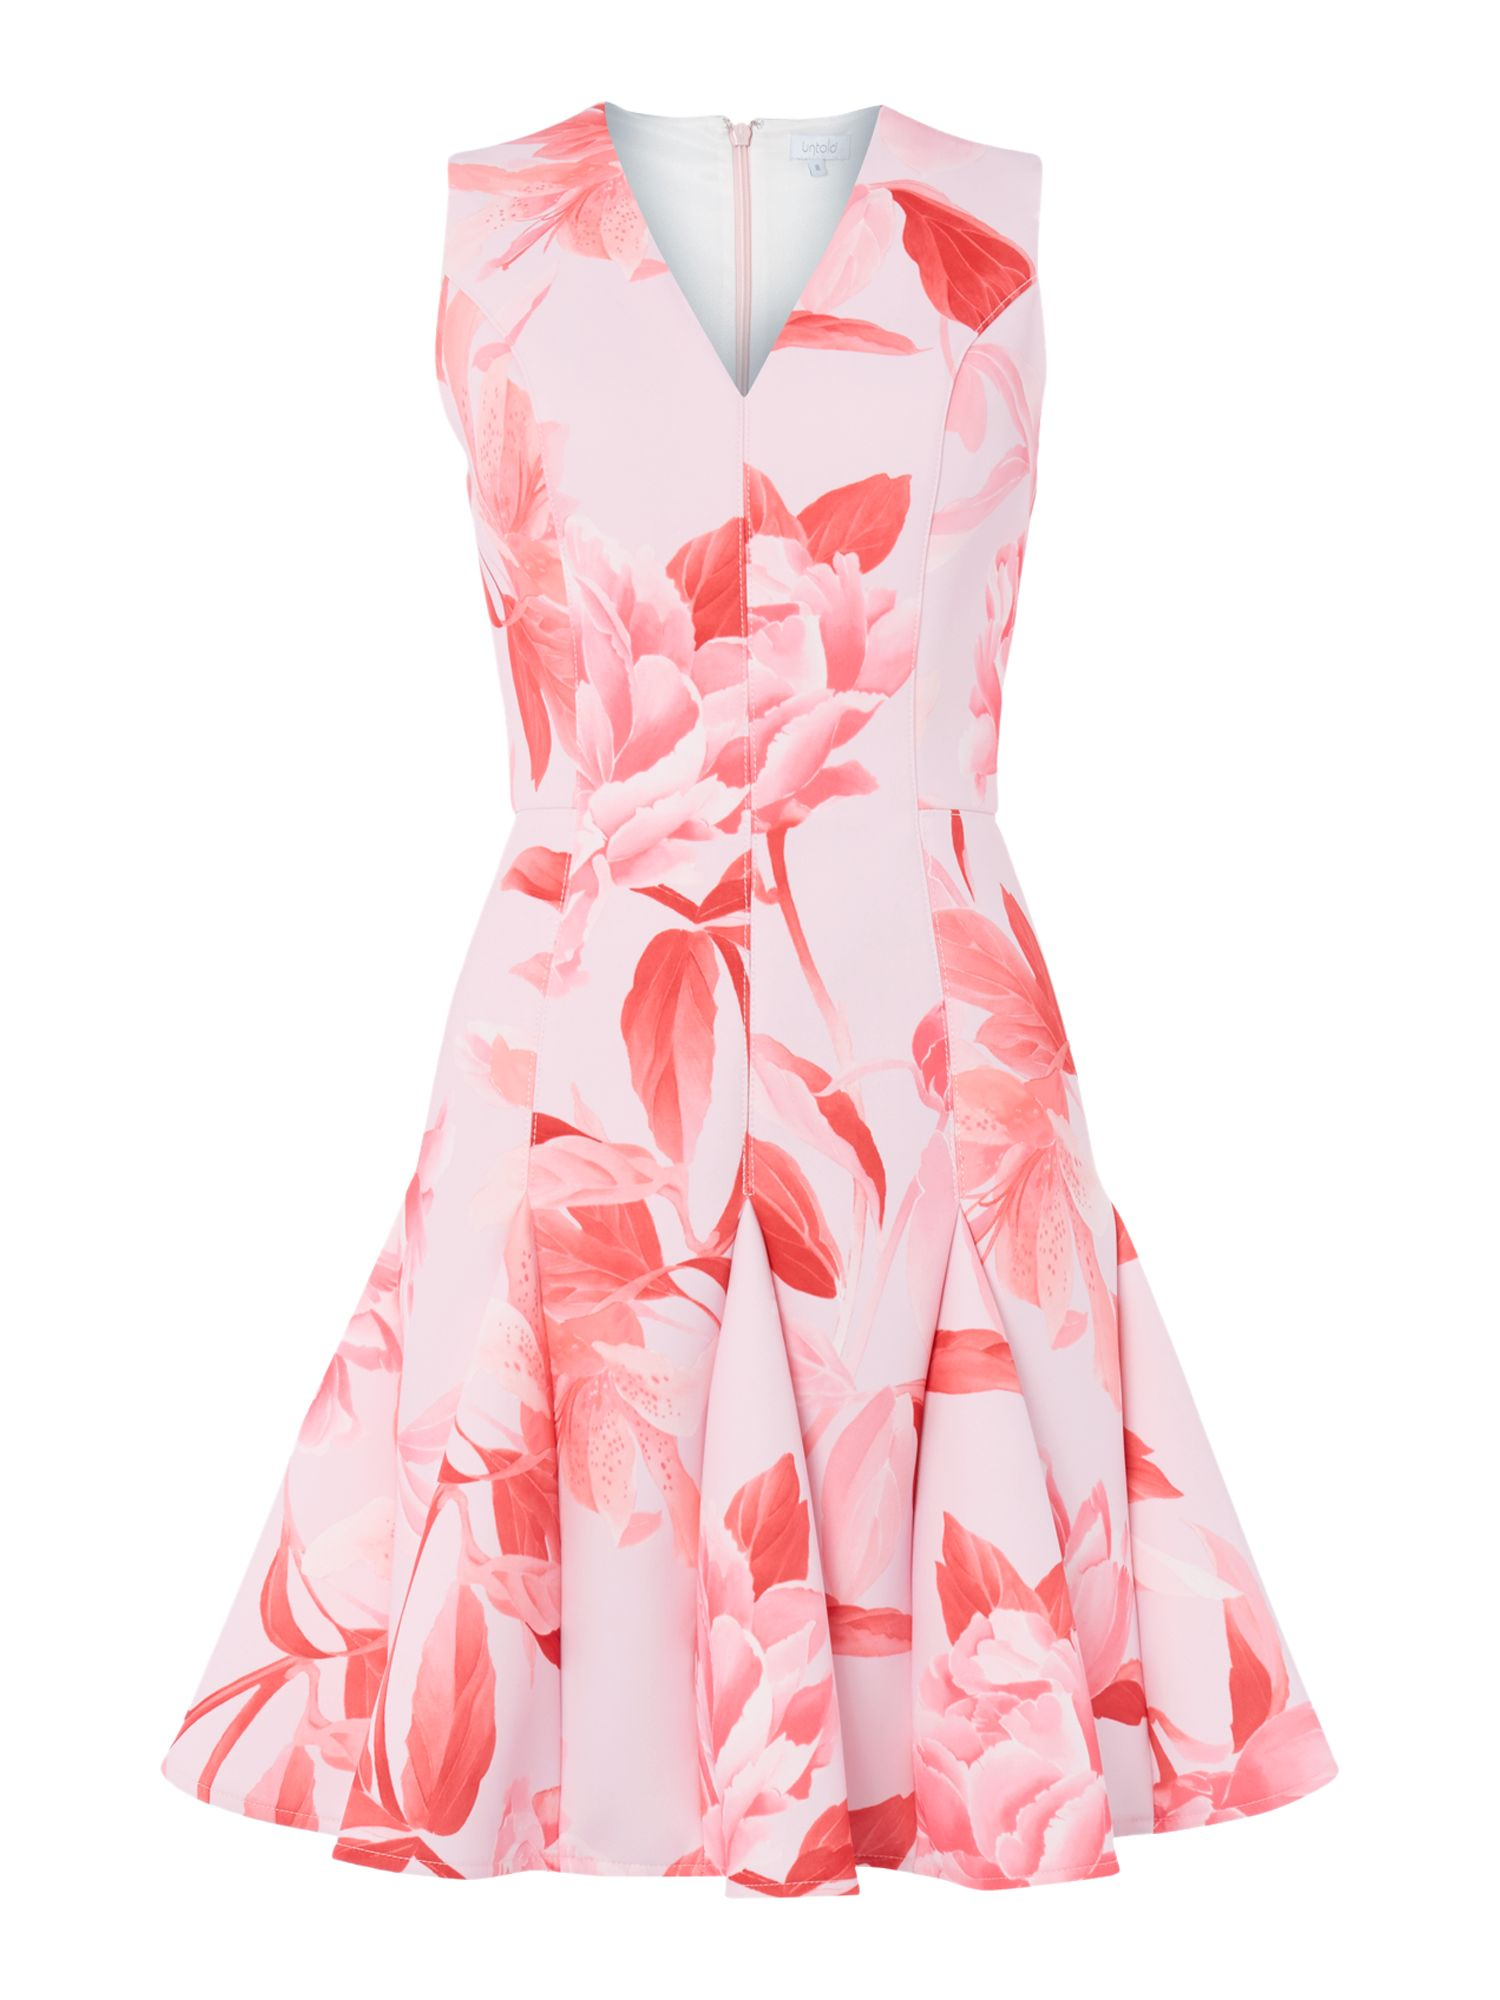 Untold V Neck Fit And Flare Rose Print Dress in Pink | Lyst